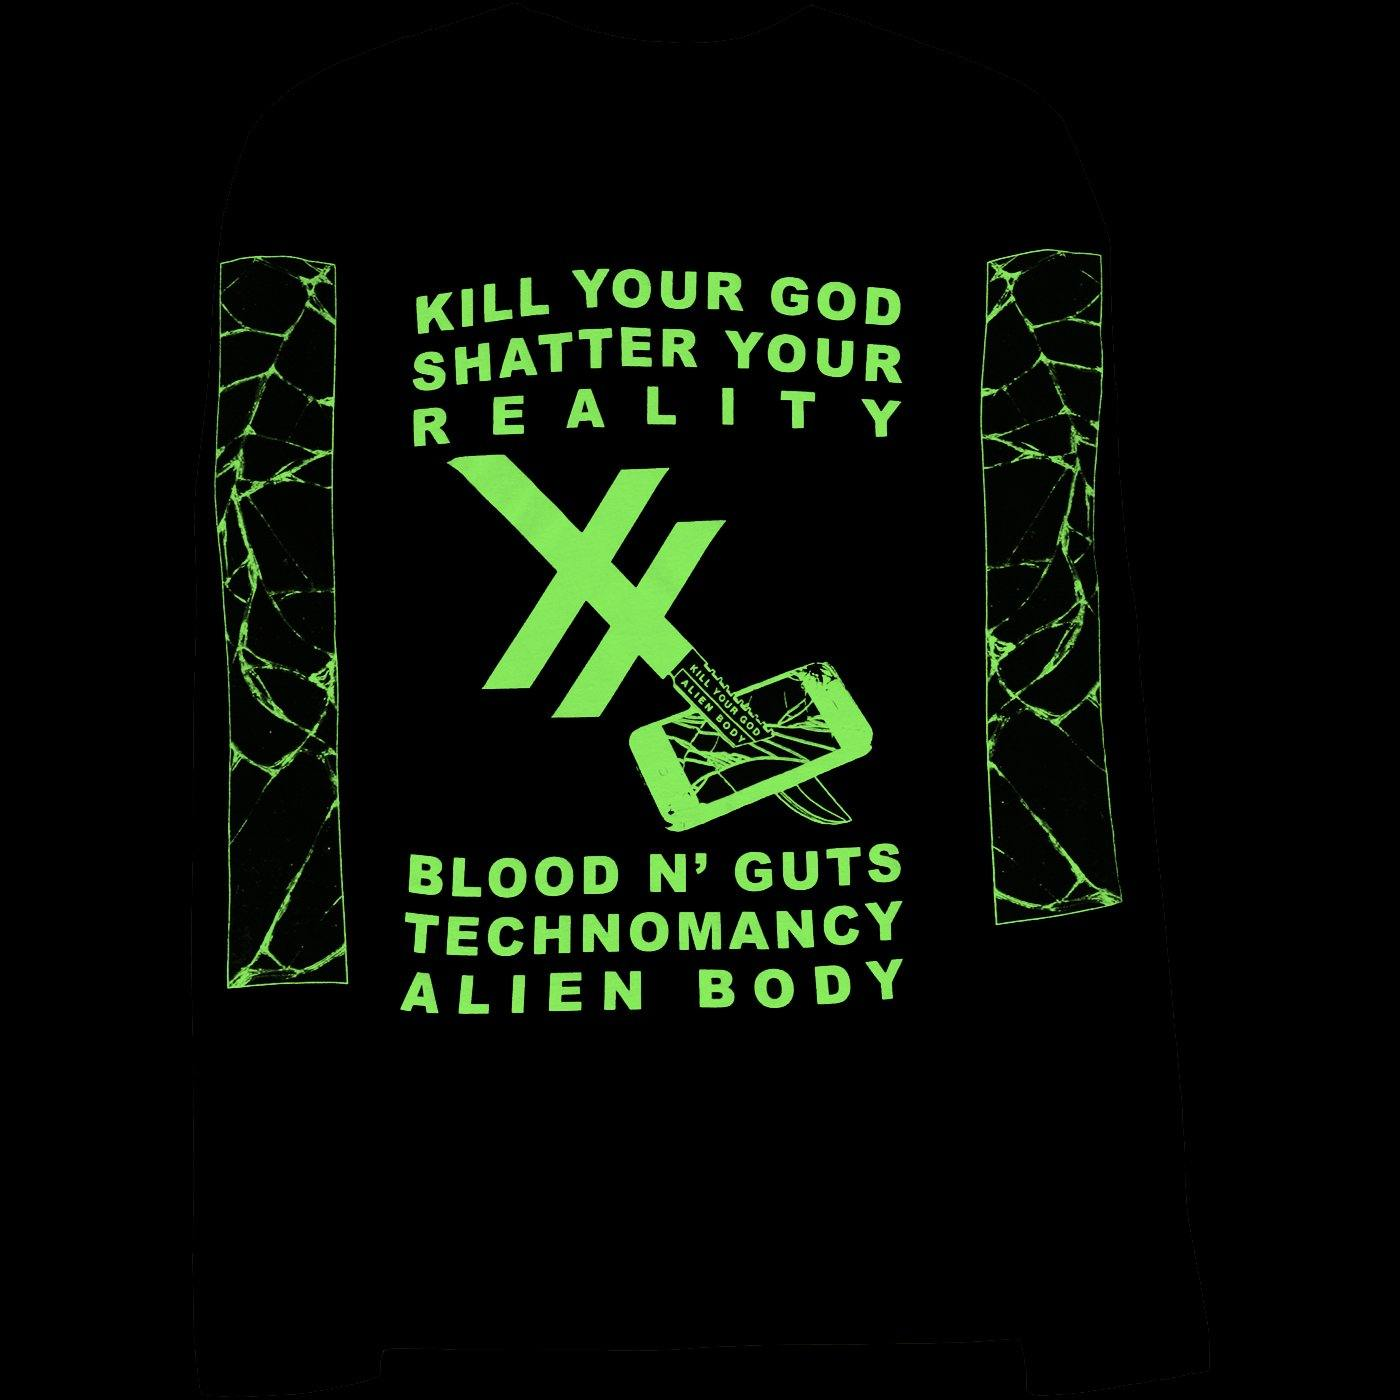 KILL YOUR GOD x ALIEN BODY: SHATTER YOUR REALITY GLOW IN THE DARK L/S SHIRT